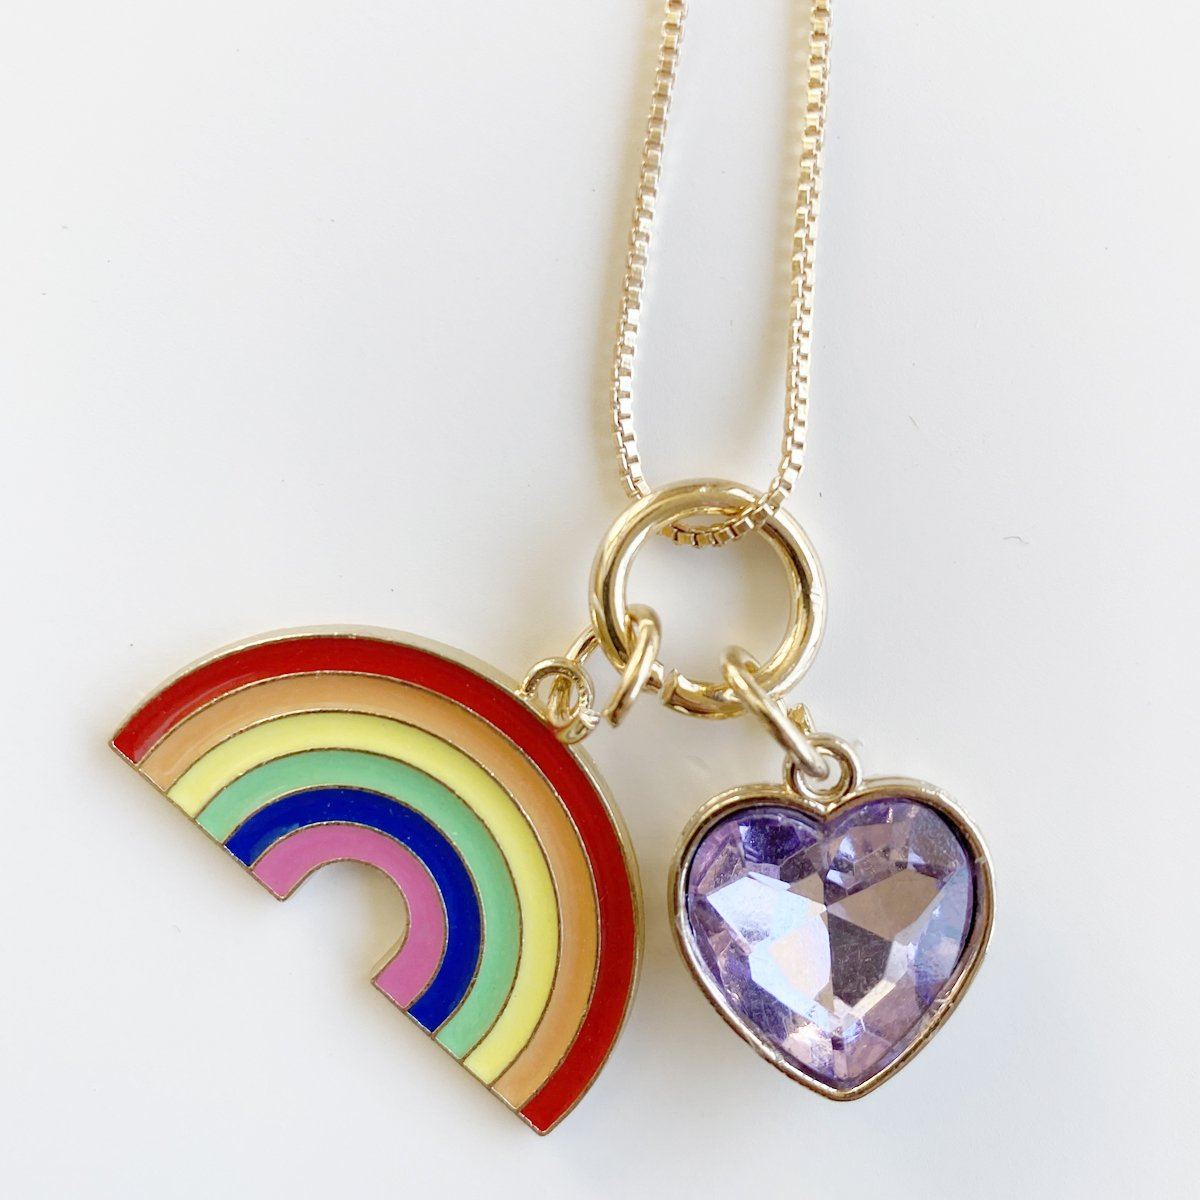 Rainbow & Heart Charm Necklace